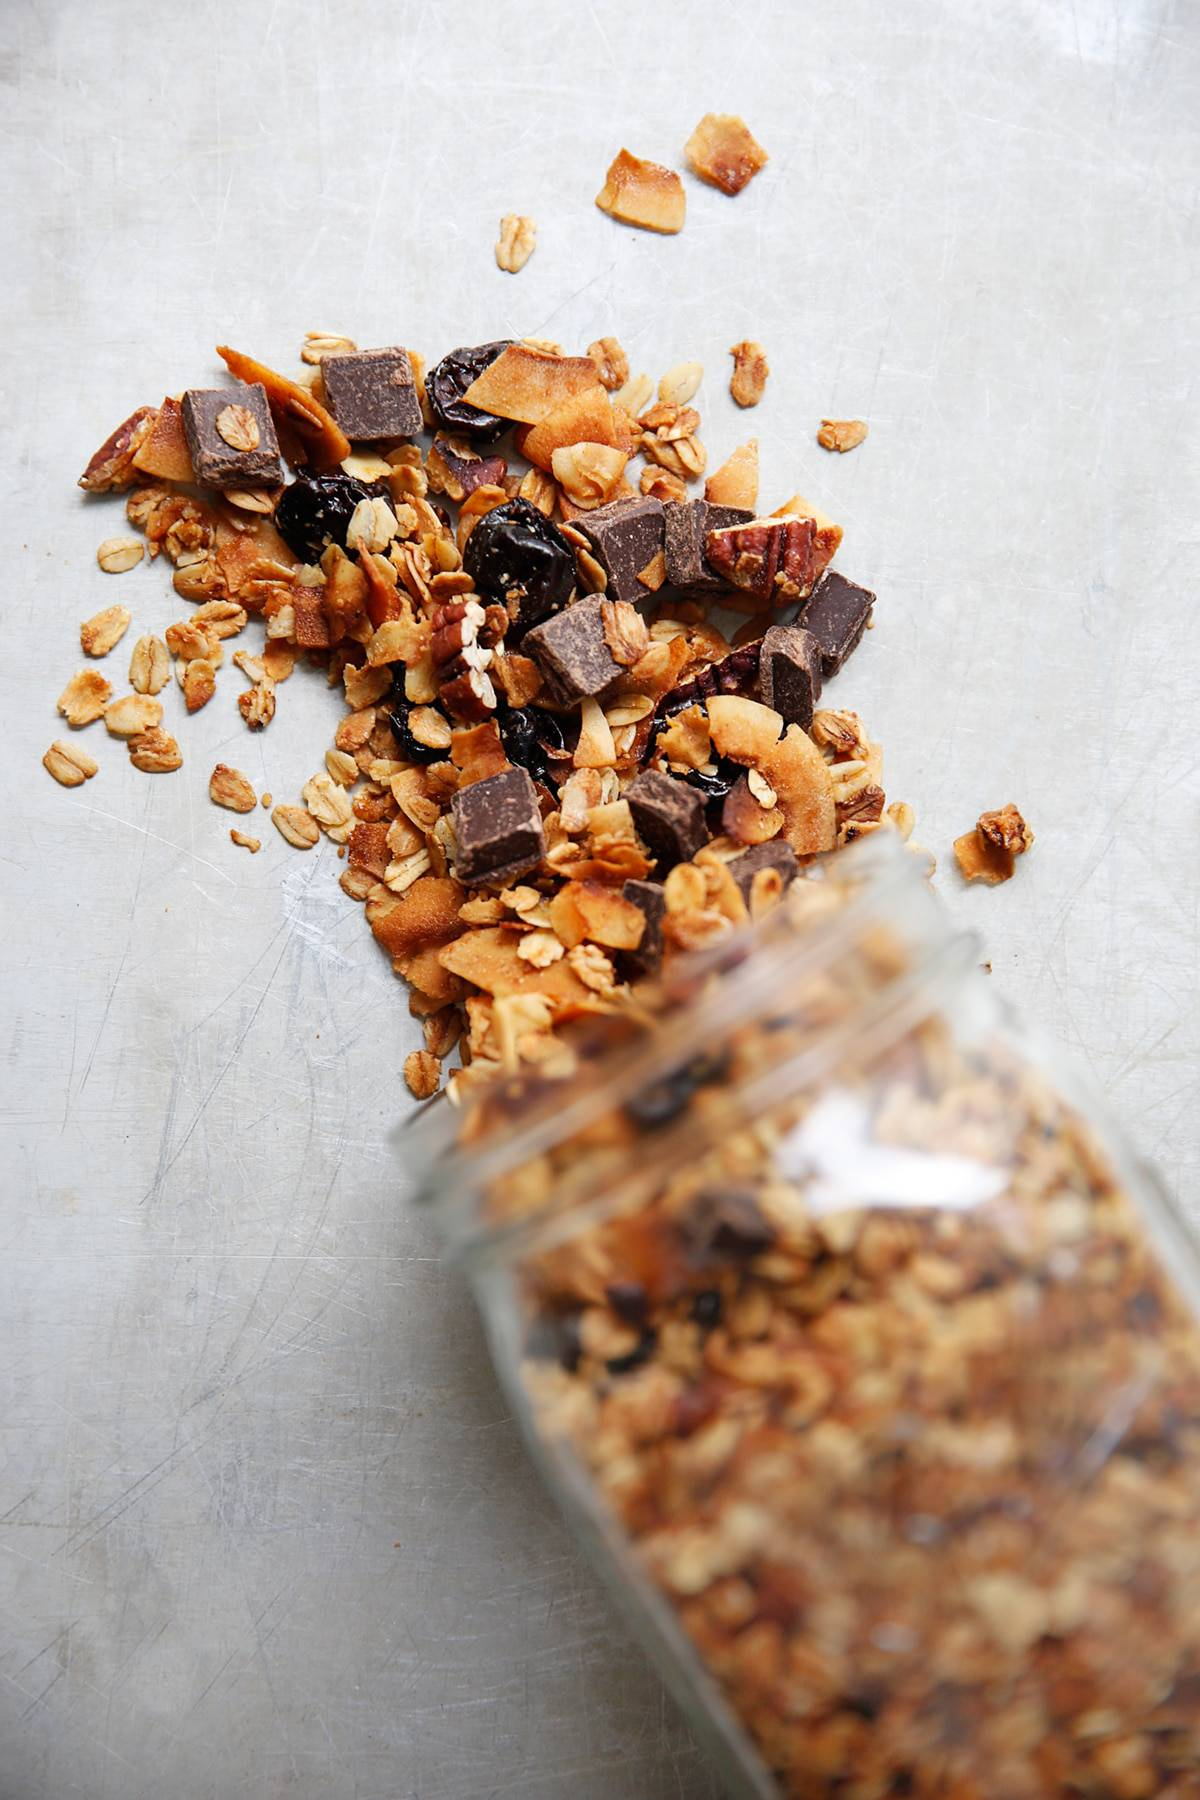 Cherry, Coconut and Chocolate Granola